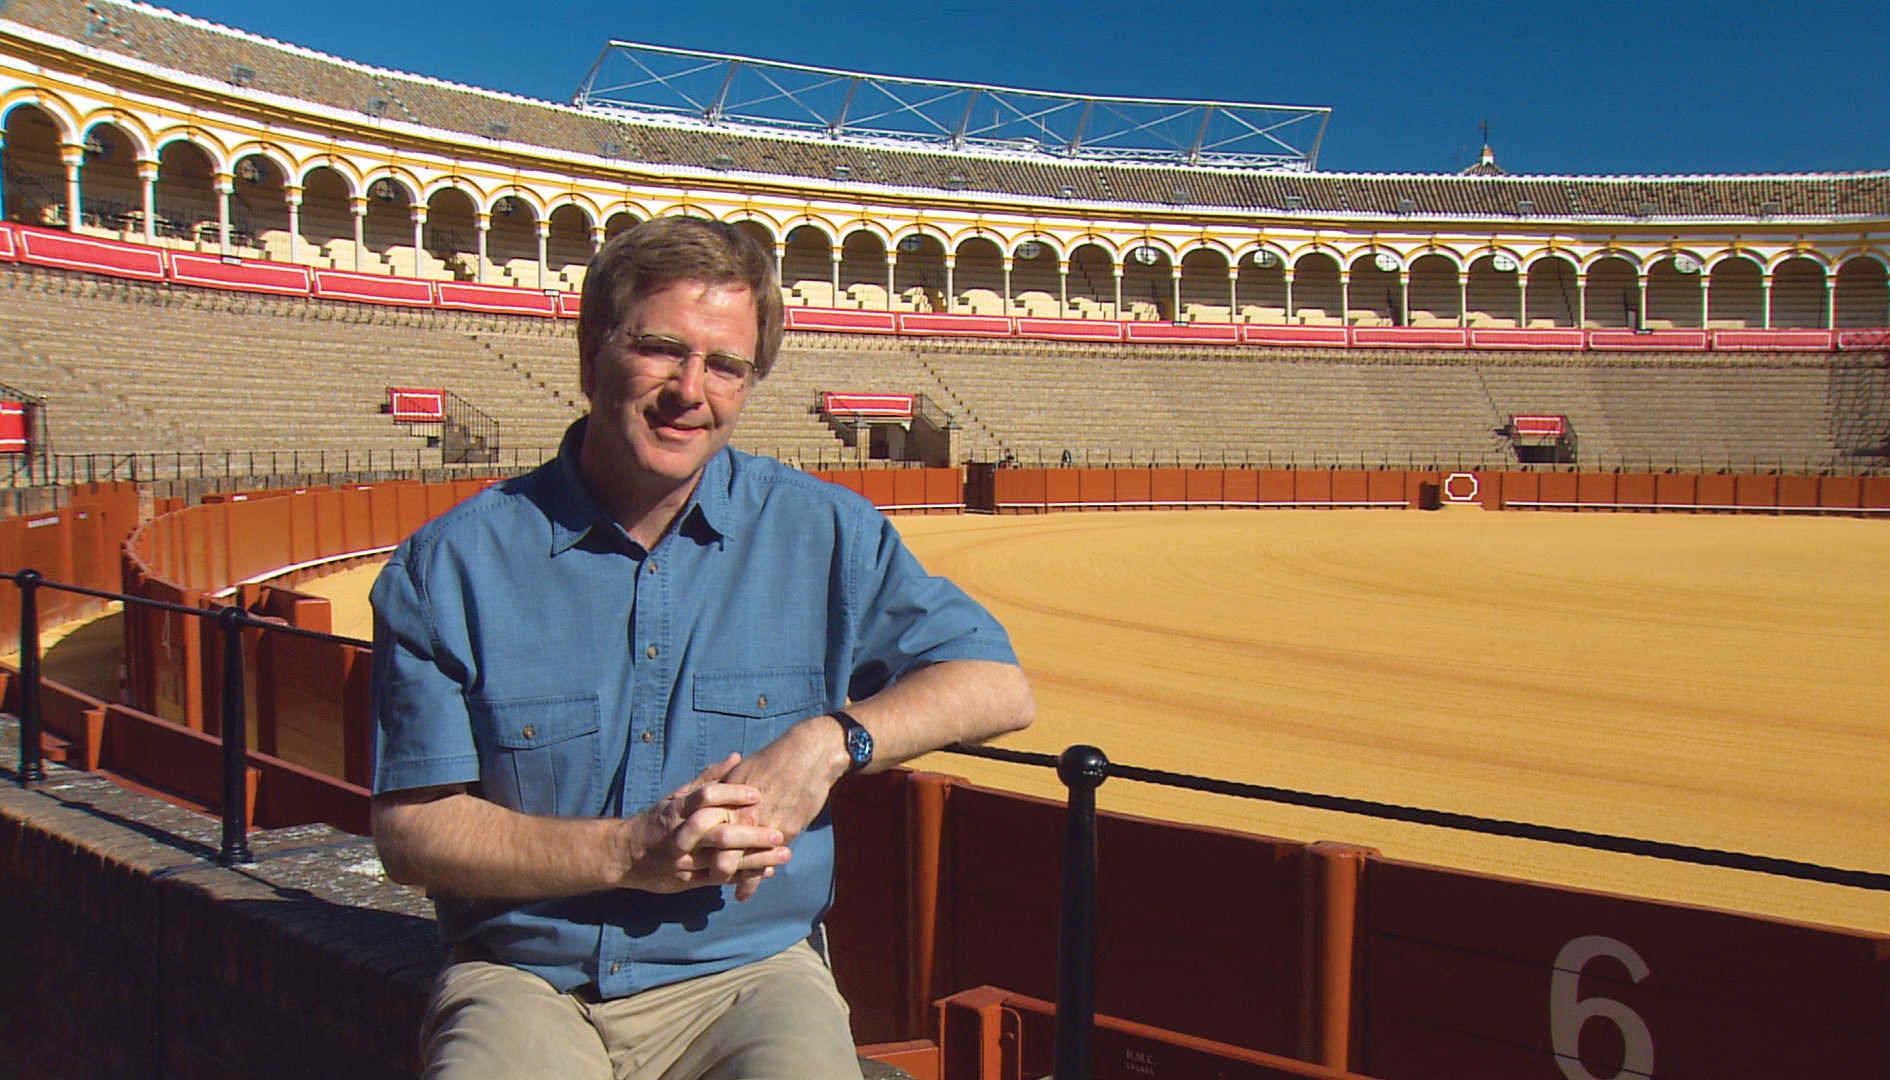 Bullfight ring in Sevilla, Spain